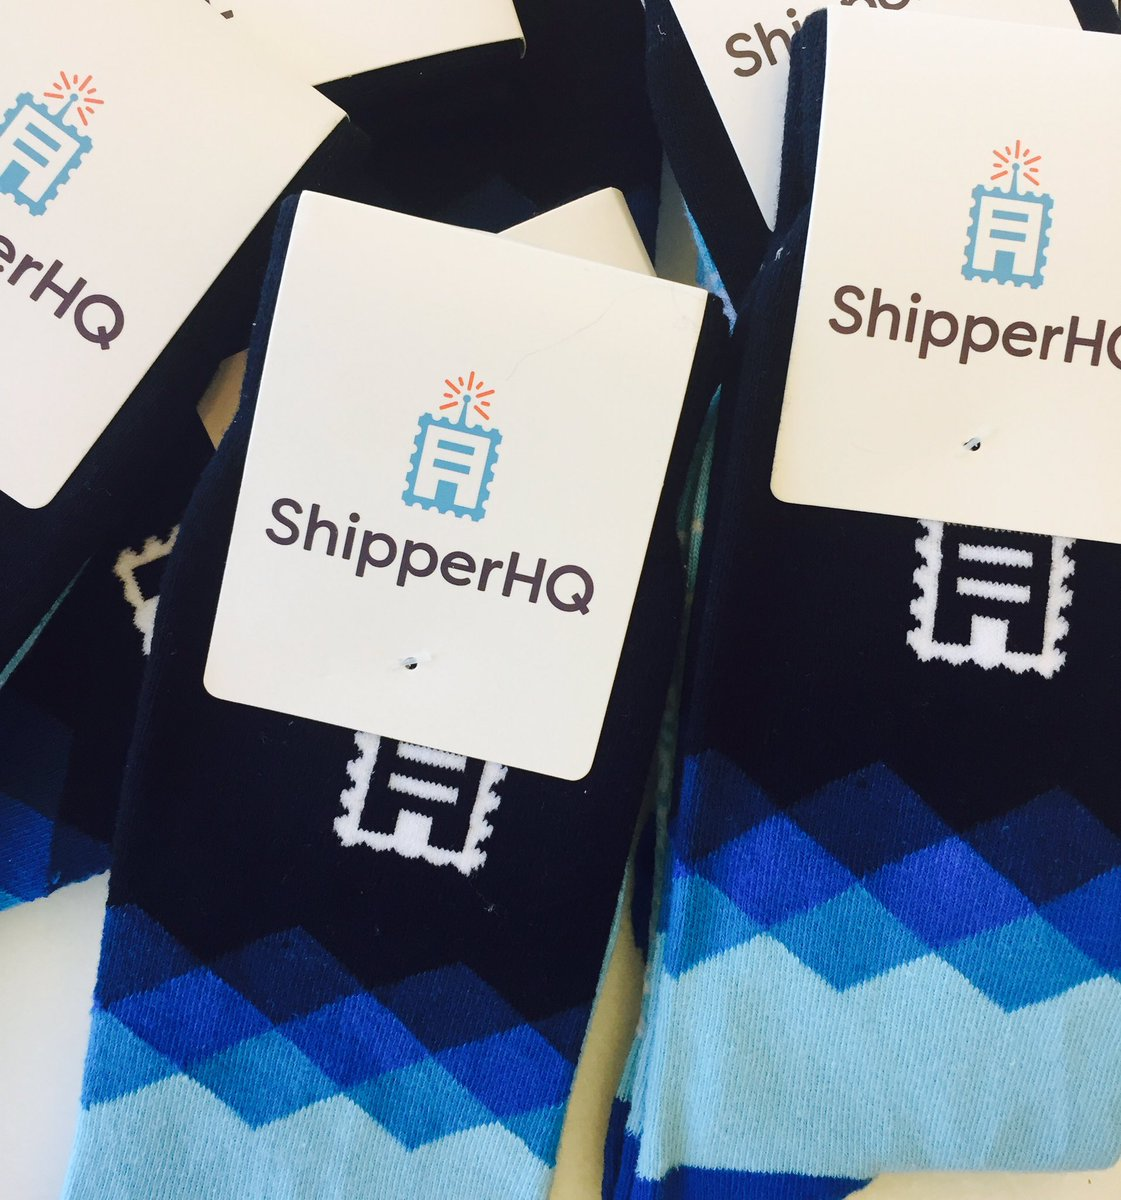 ShipperHQ: Our sock #swag game is strong this year at #MagentoImagine.  Who else wants a pair? 🙋🏽🙋🏼♂️ https://t.co/ViVXytxA81